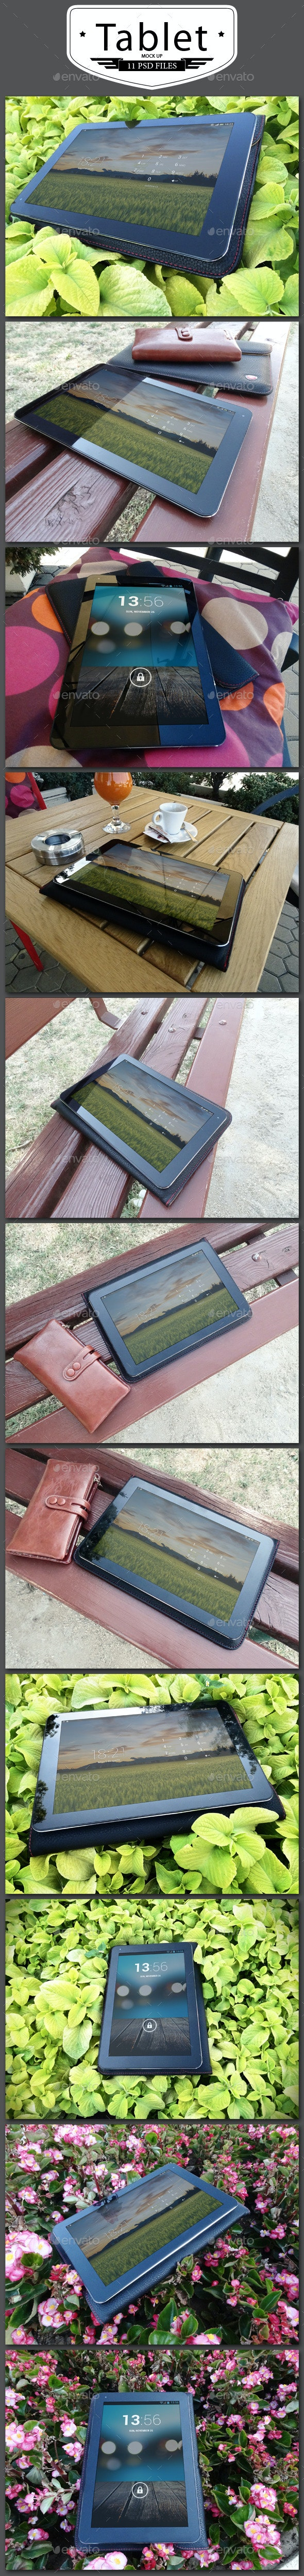 11 Tablet Mock Up - Product Mock-Ups Graphics